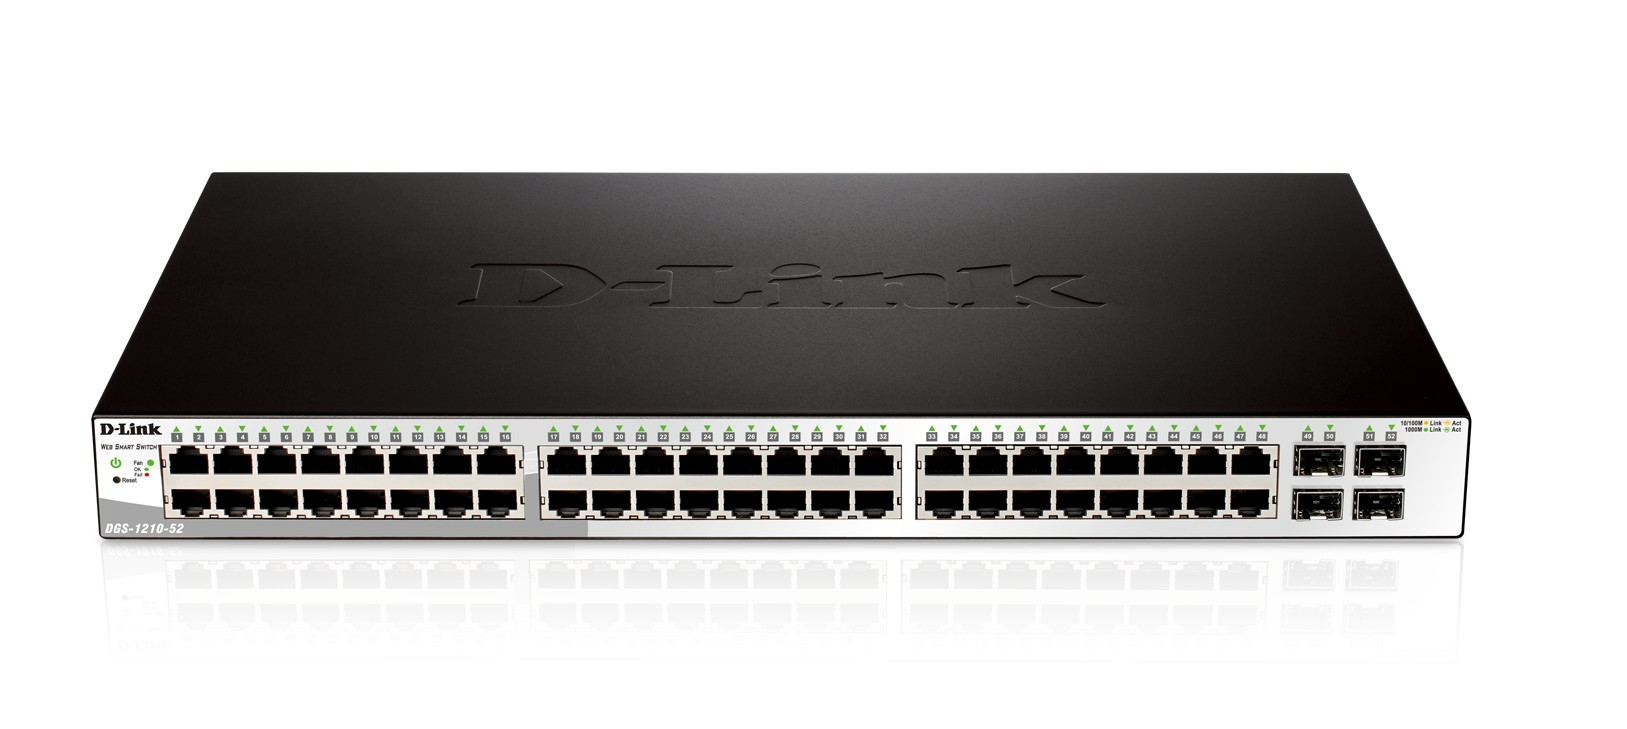 D-LINK DGS-1210-52 MANAGED NETWORK SWITCH L2 1U BLACK